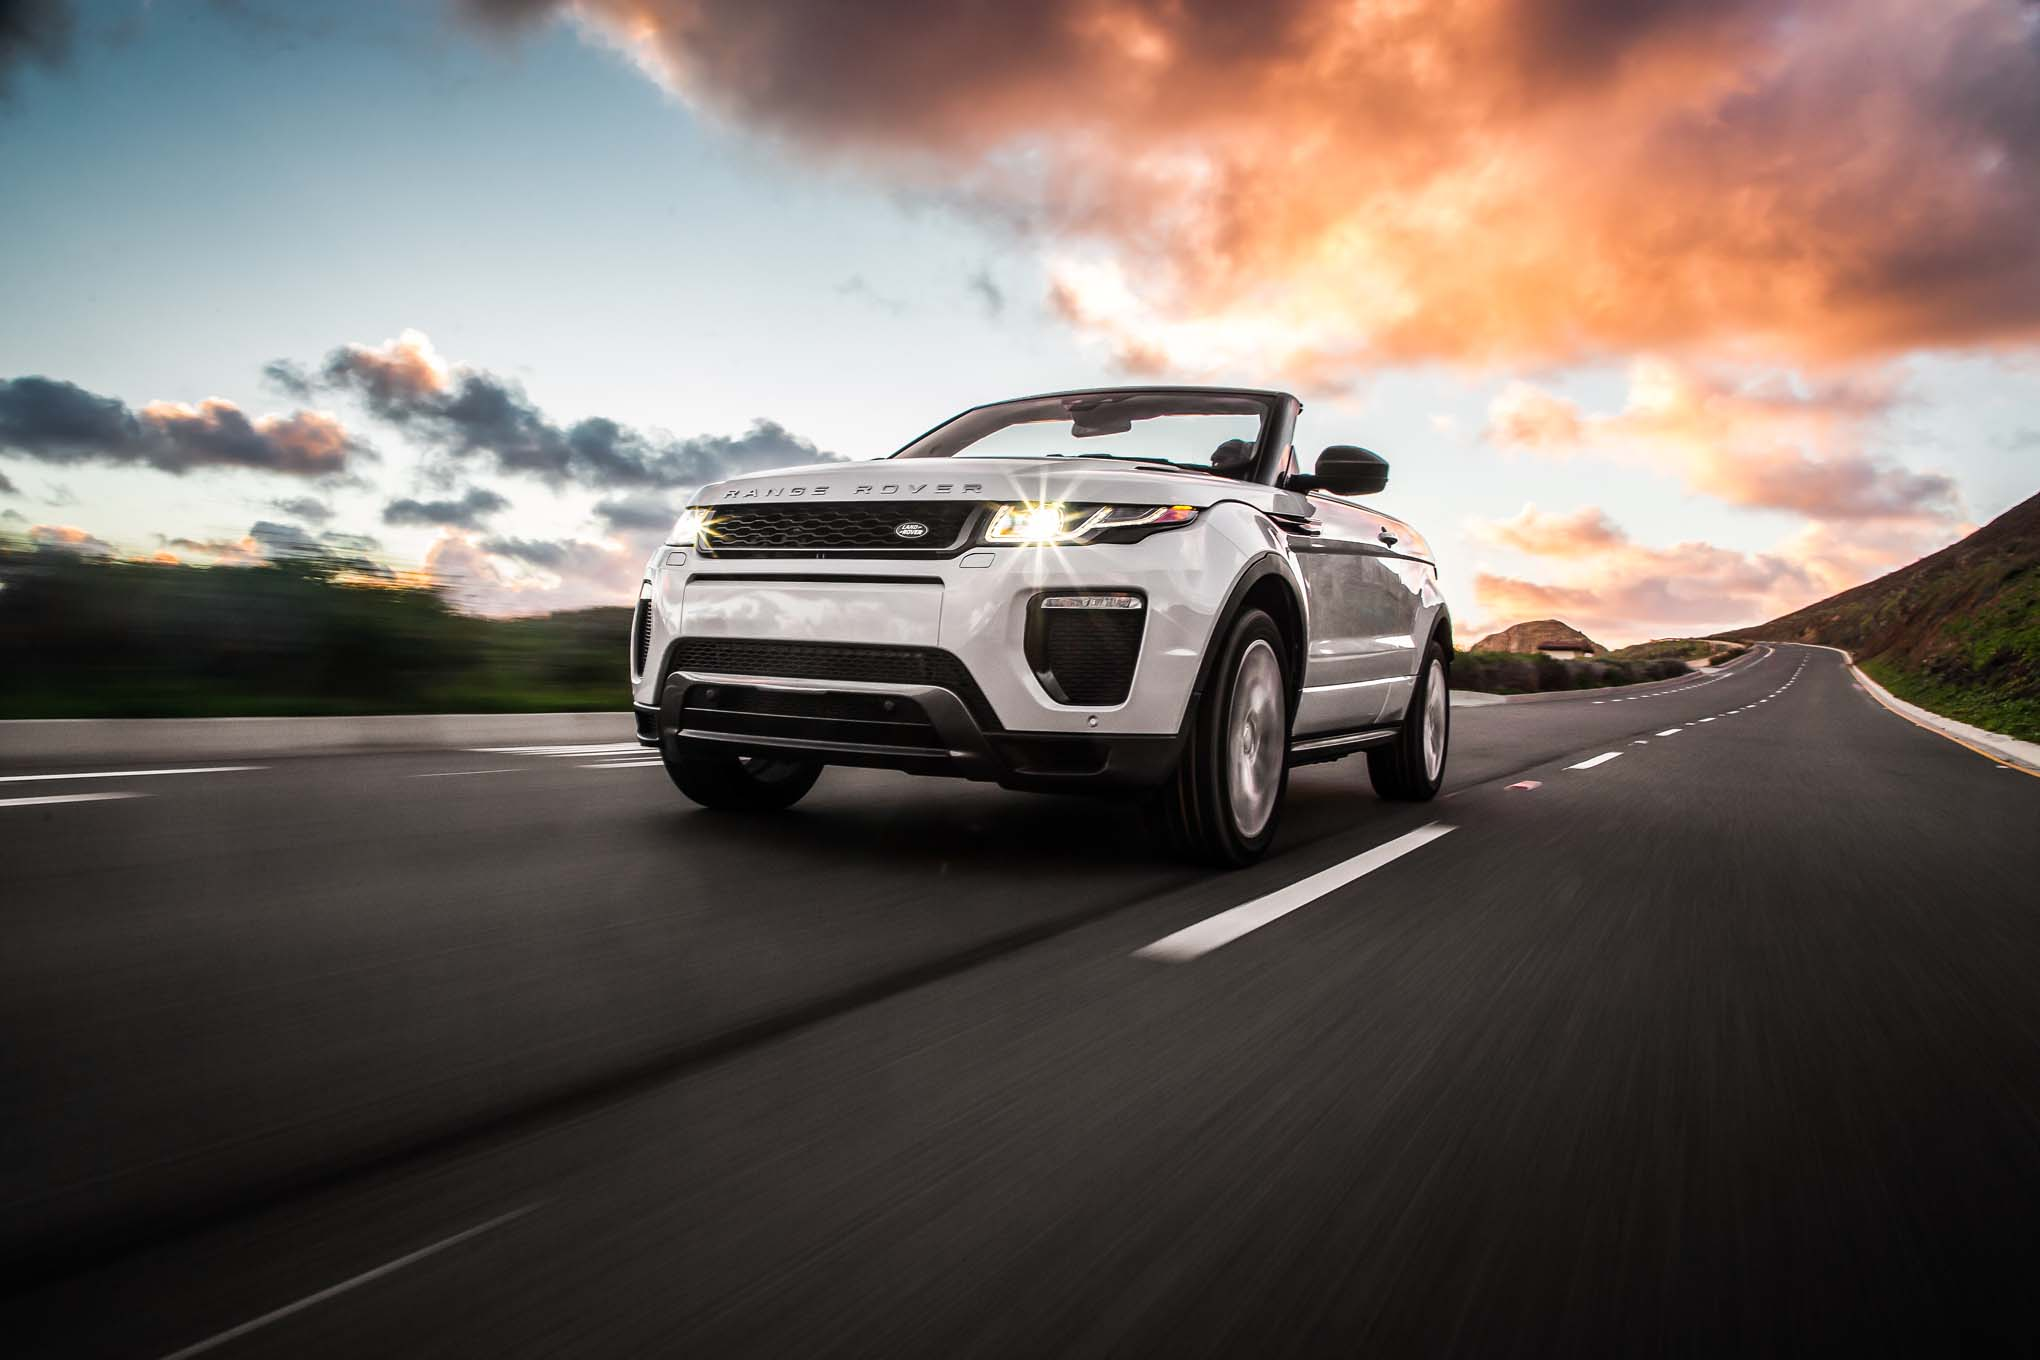 2017 Land Rover Range Rover Evoque convertible front three quarter in motion 04